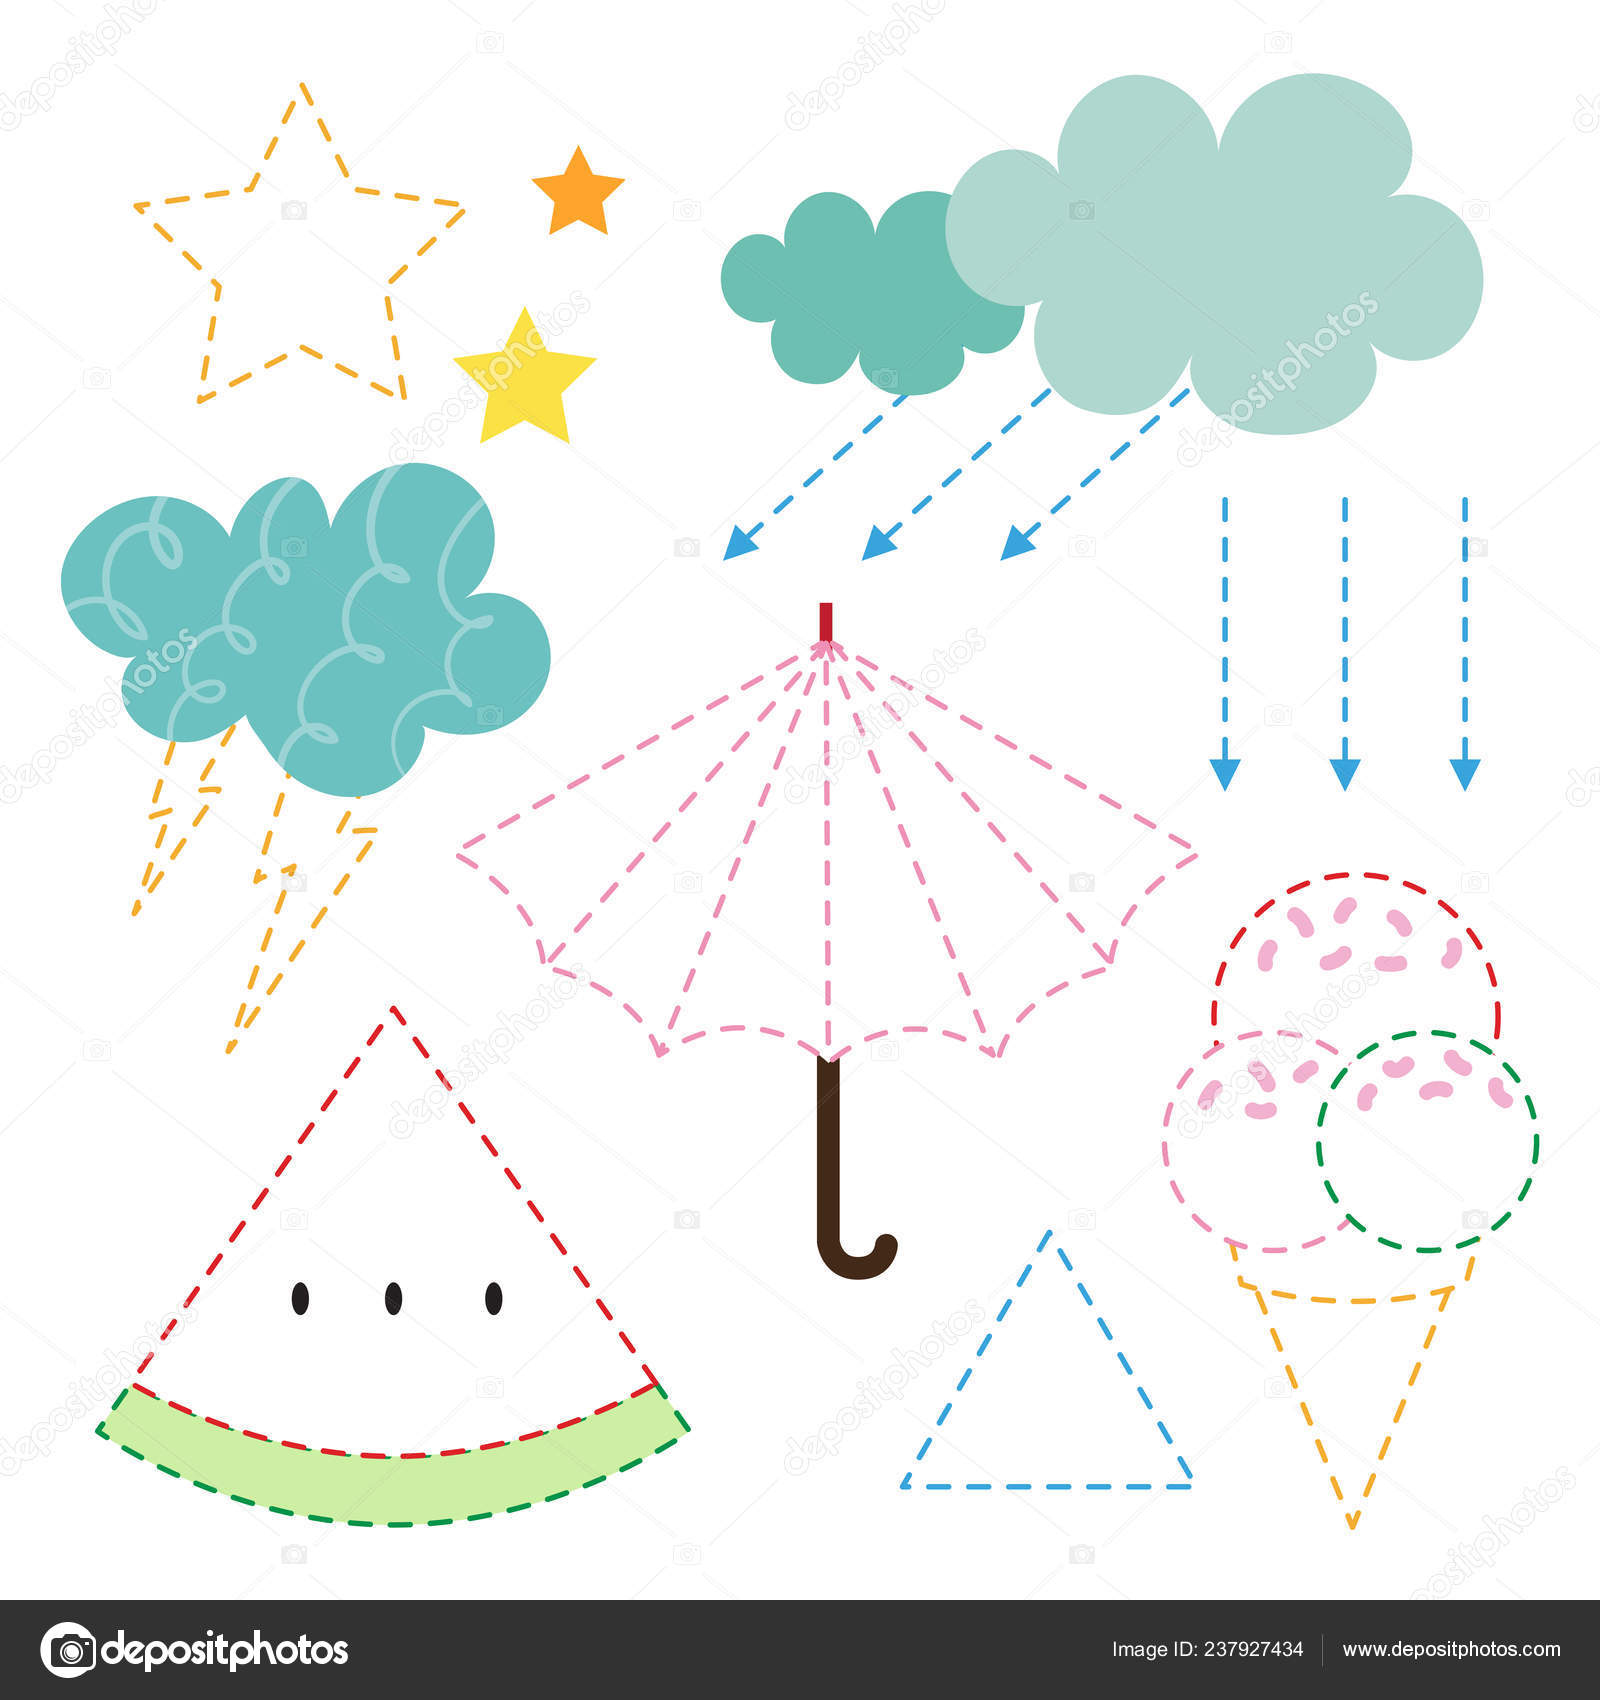 photo regarding Worksheet Design referred to as Weather conditions Worksheet Vector Layout Temperature Art Vector